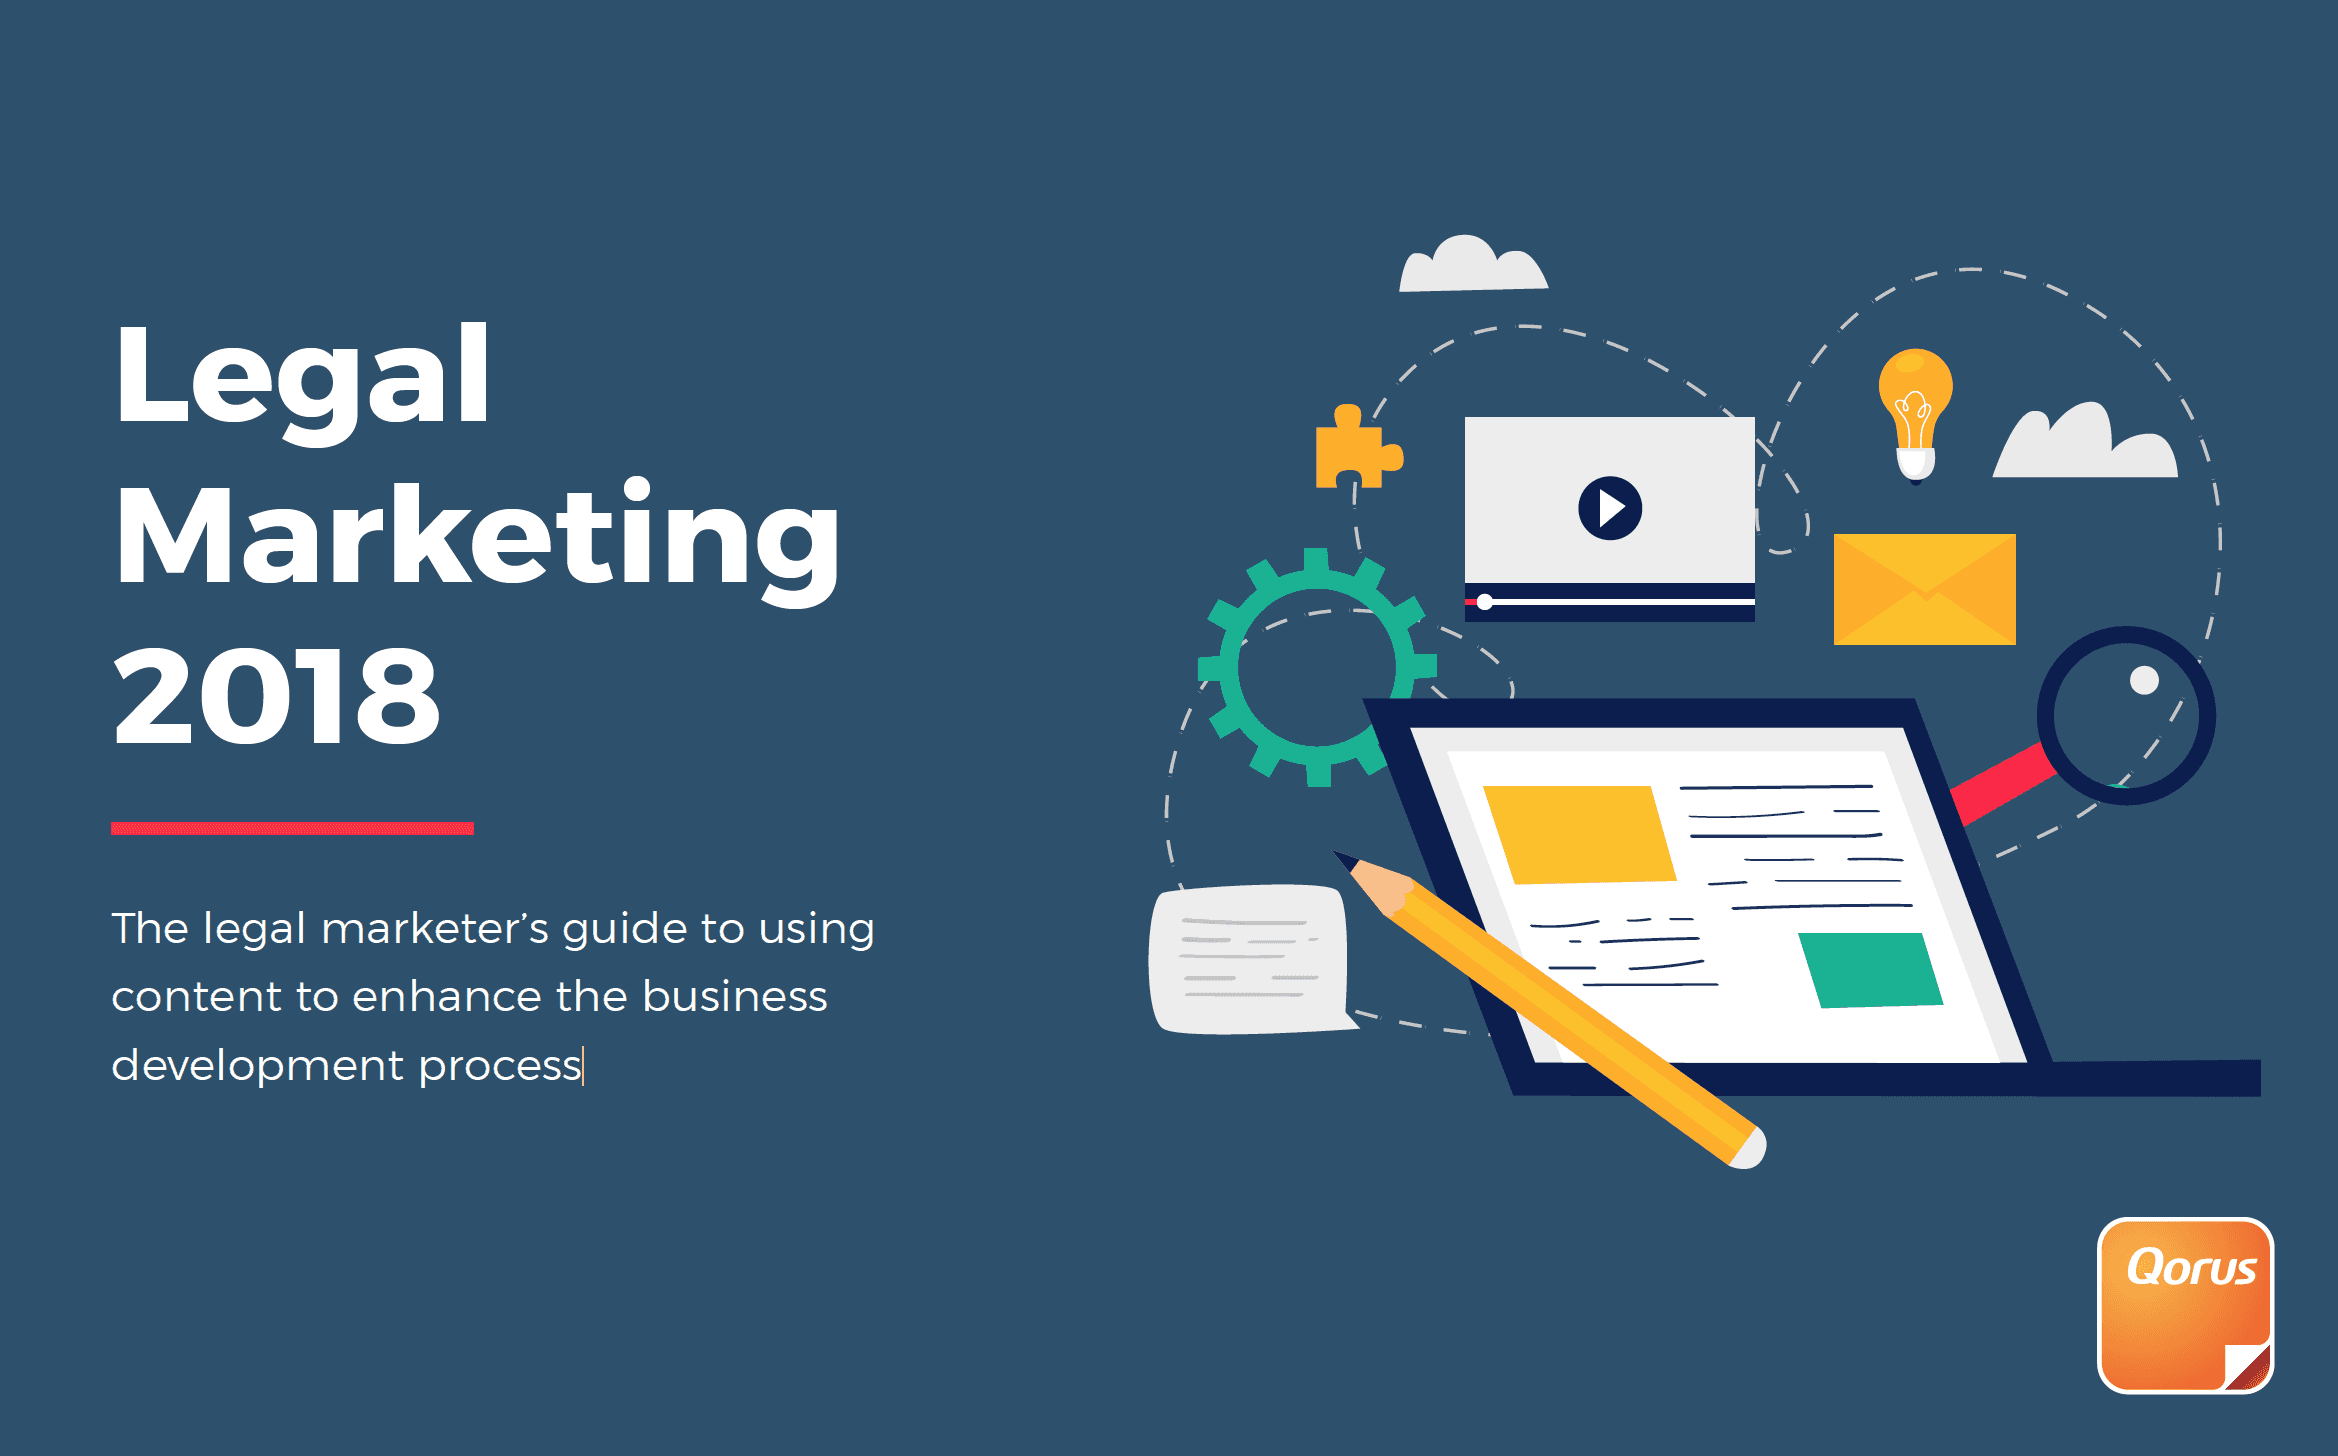 Legal Marketing Trends 2018